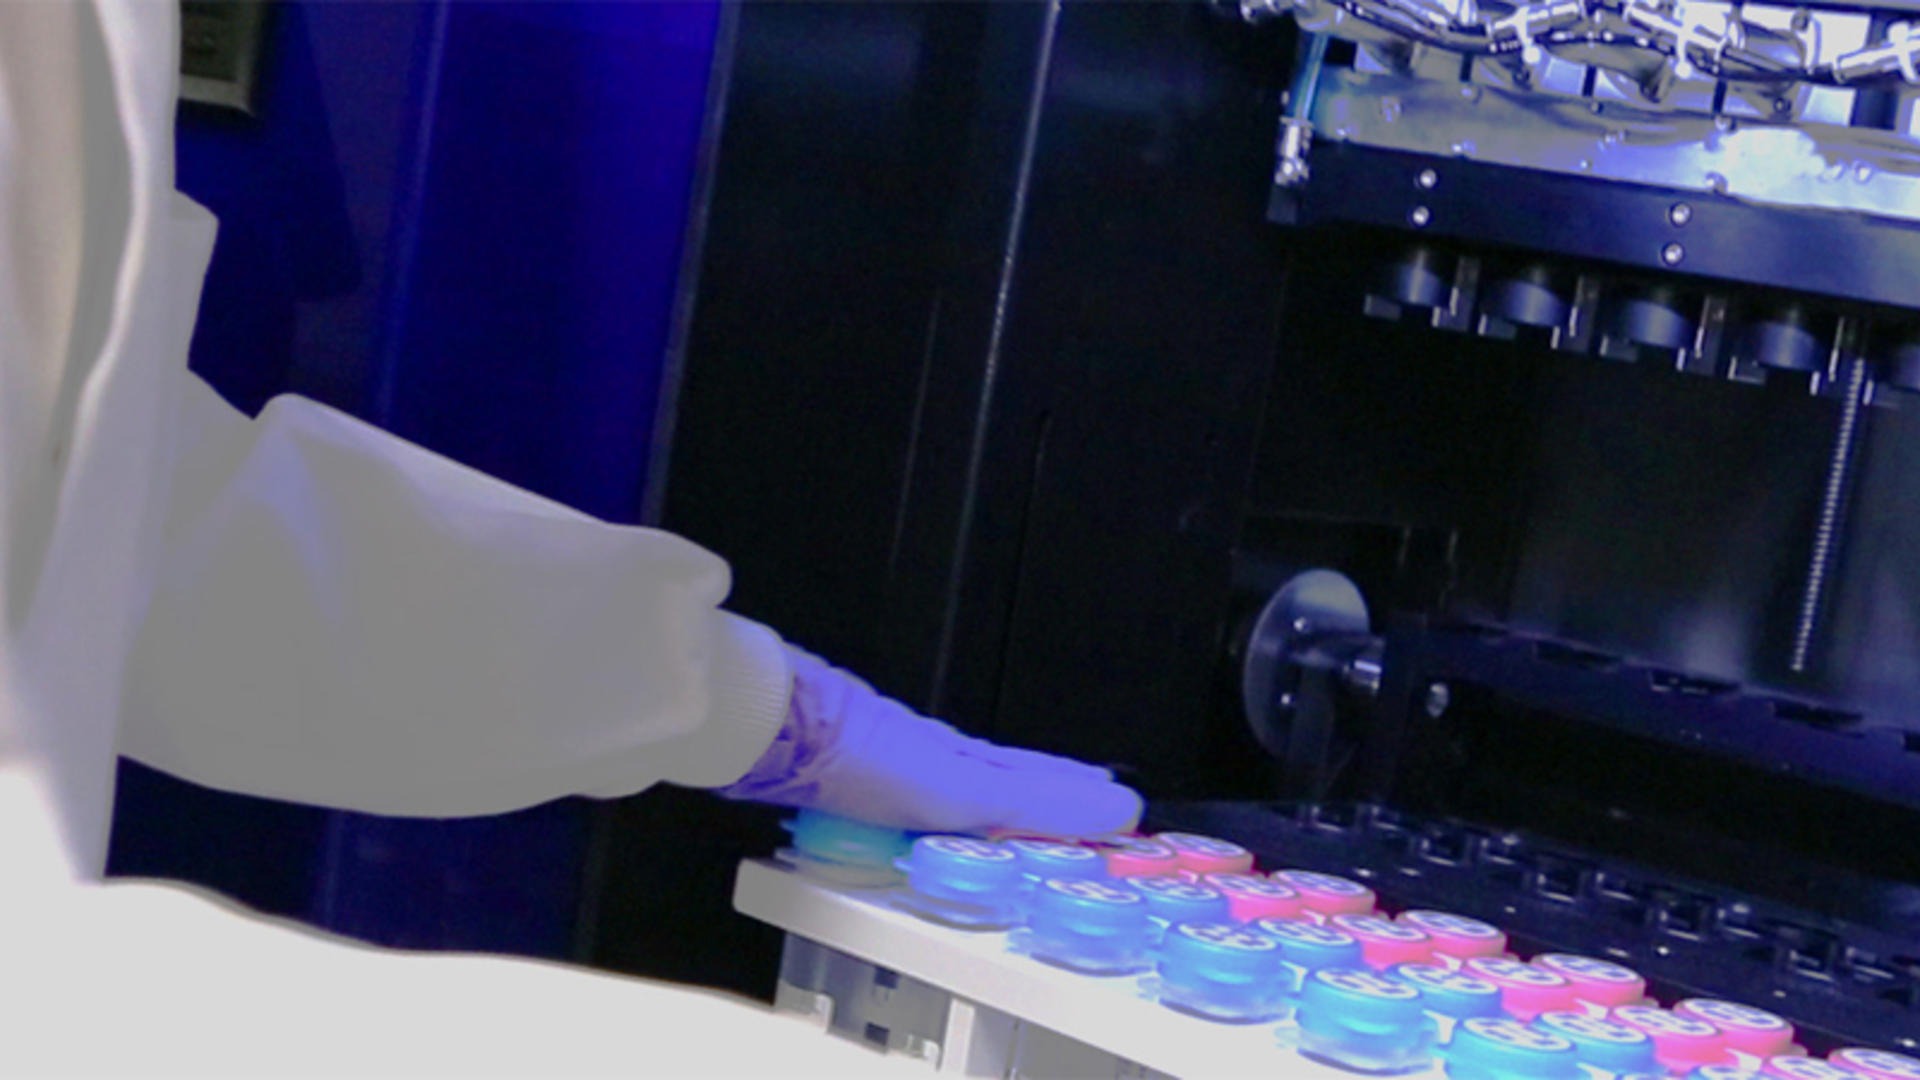 A person in PPE moving samples into or out of a fridge